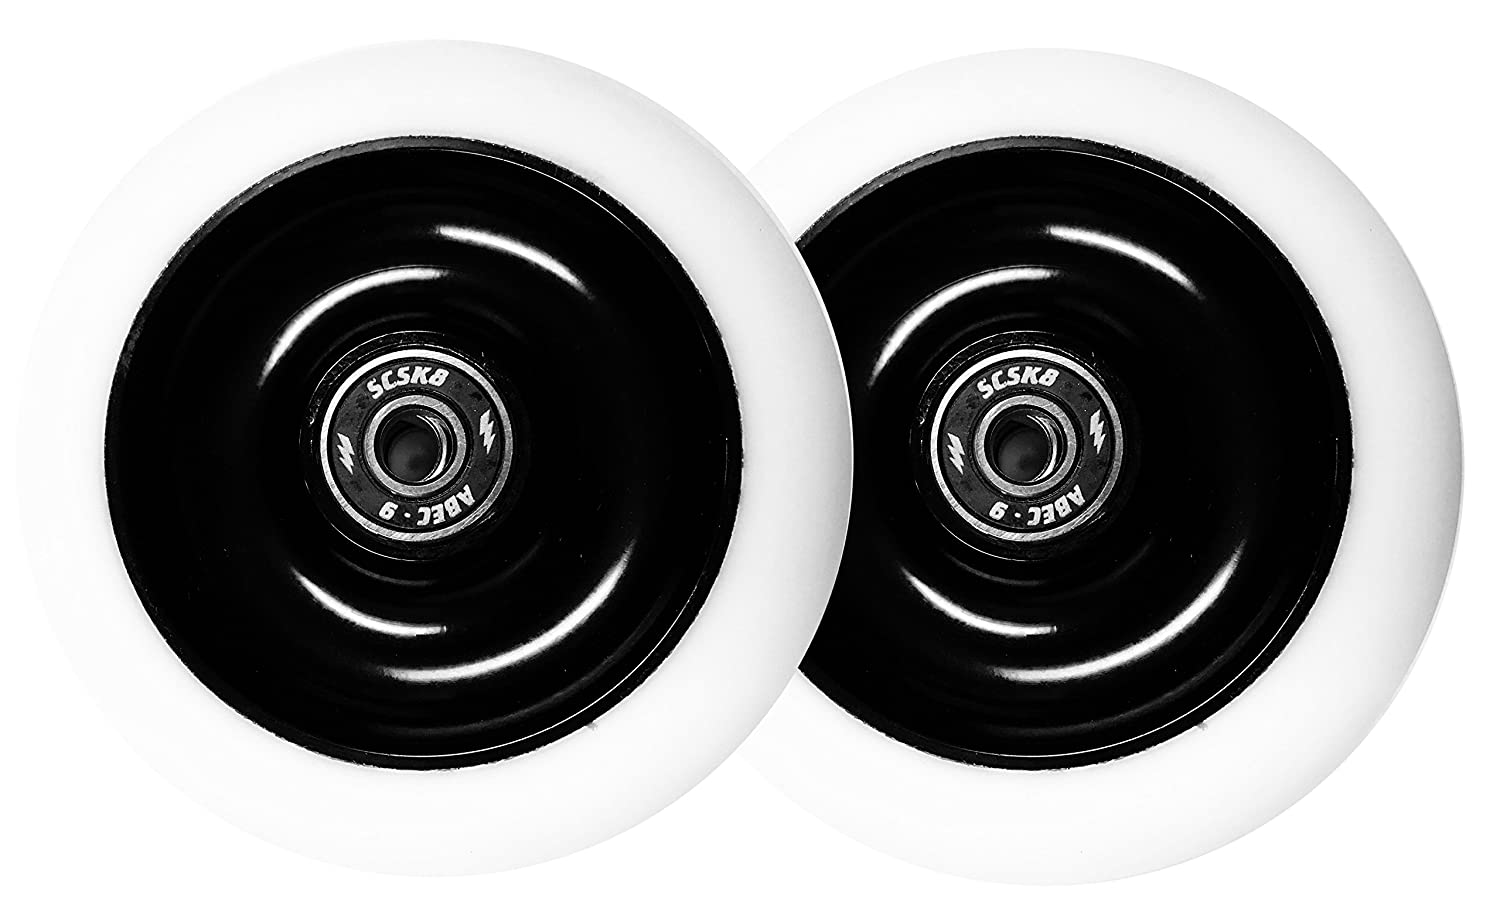 100mm Pro White Scooter Wheel Solid Black Aluminum Hub With SCSK8 Abec 9 Bearings Set